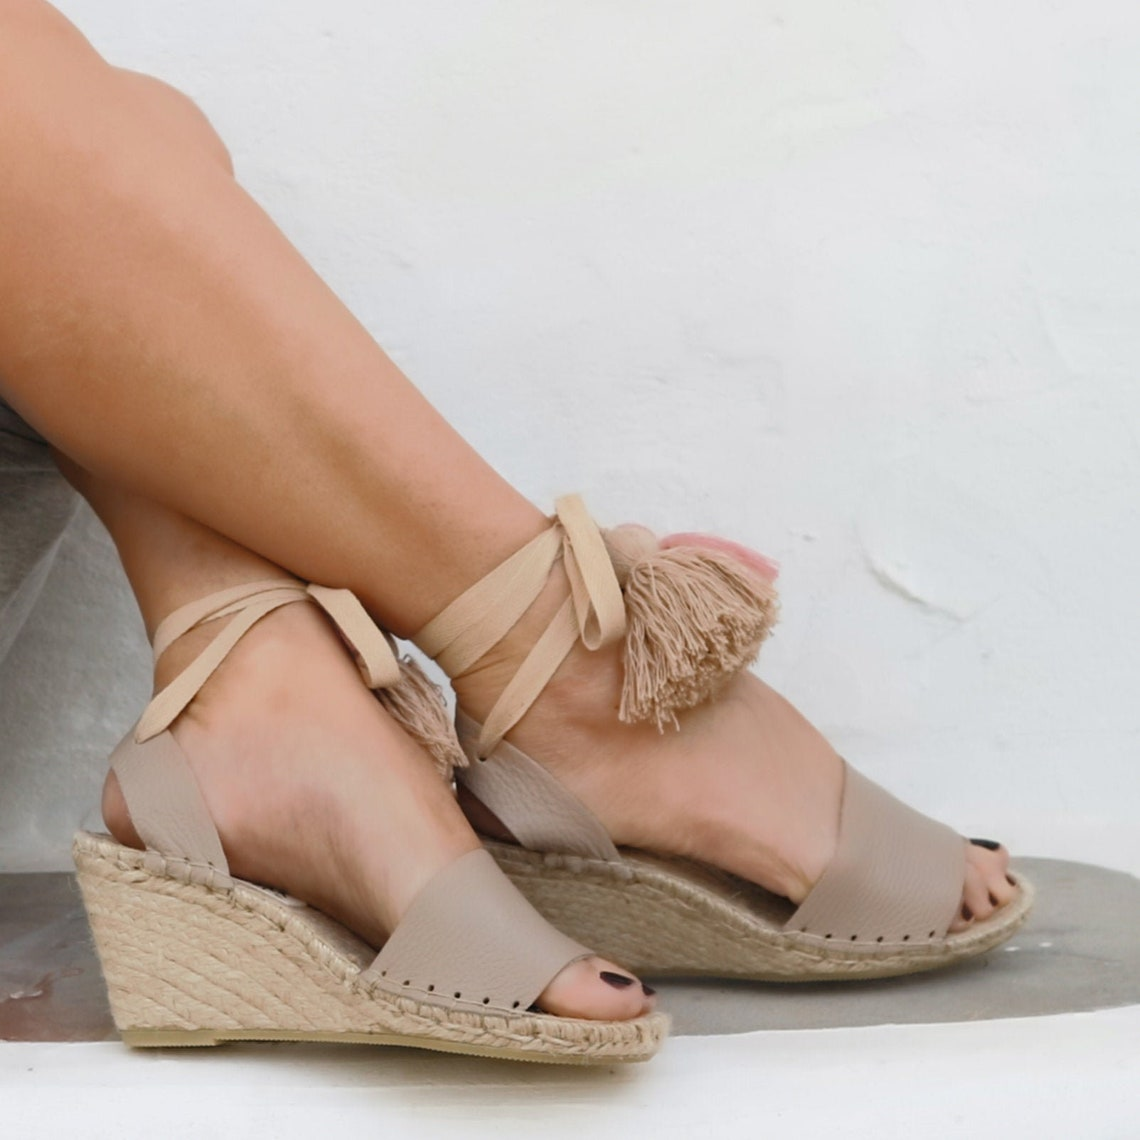 HIGH WEDGE ESPADRILLES in Beige. Leather Sandals with Tassels. Boho Wedding Shoes